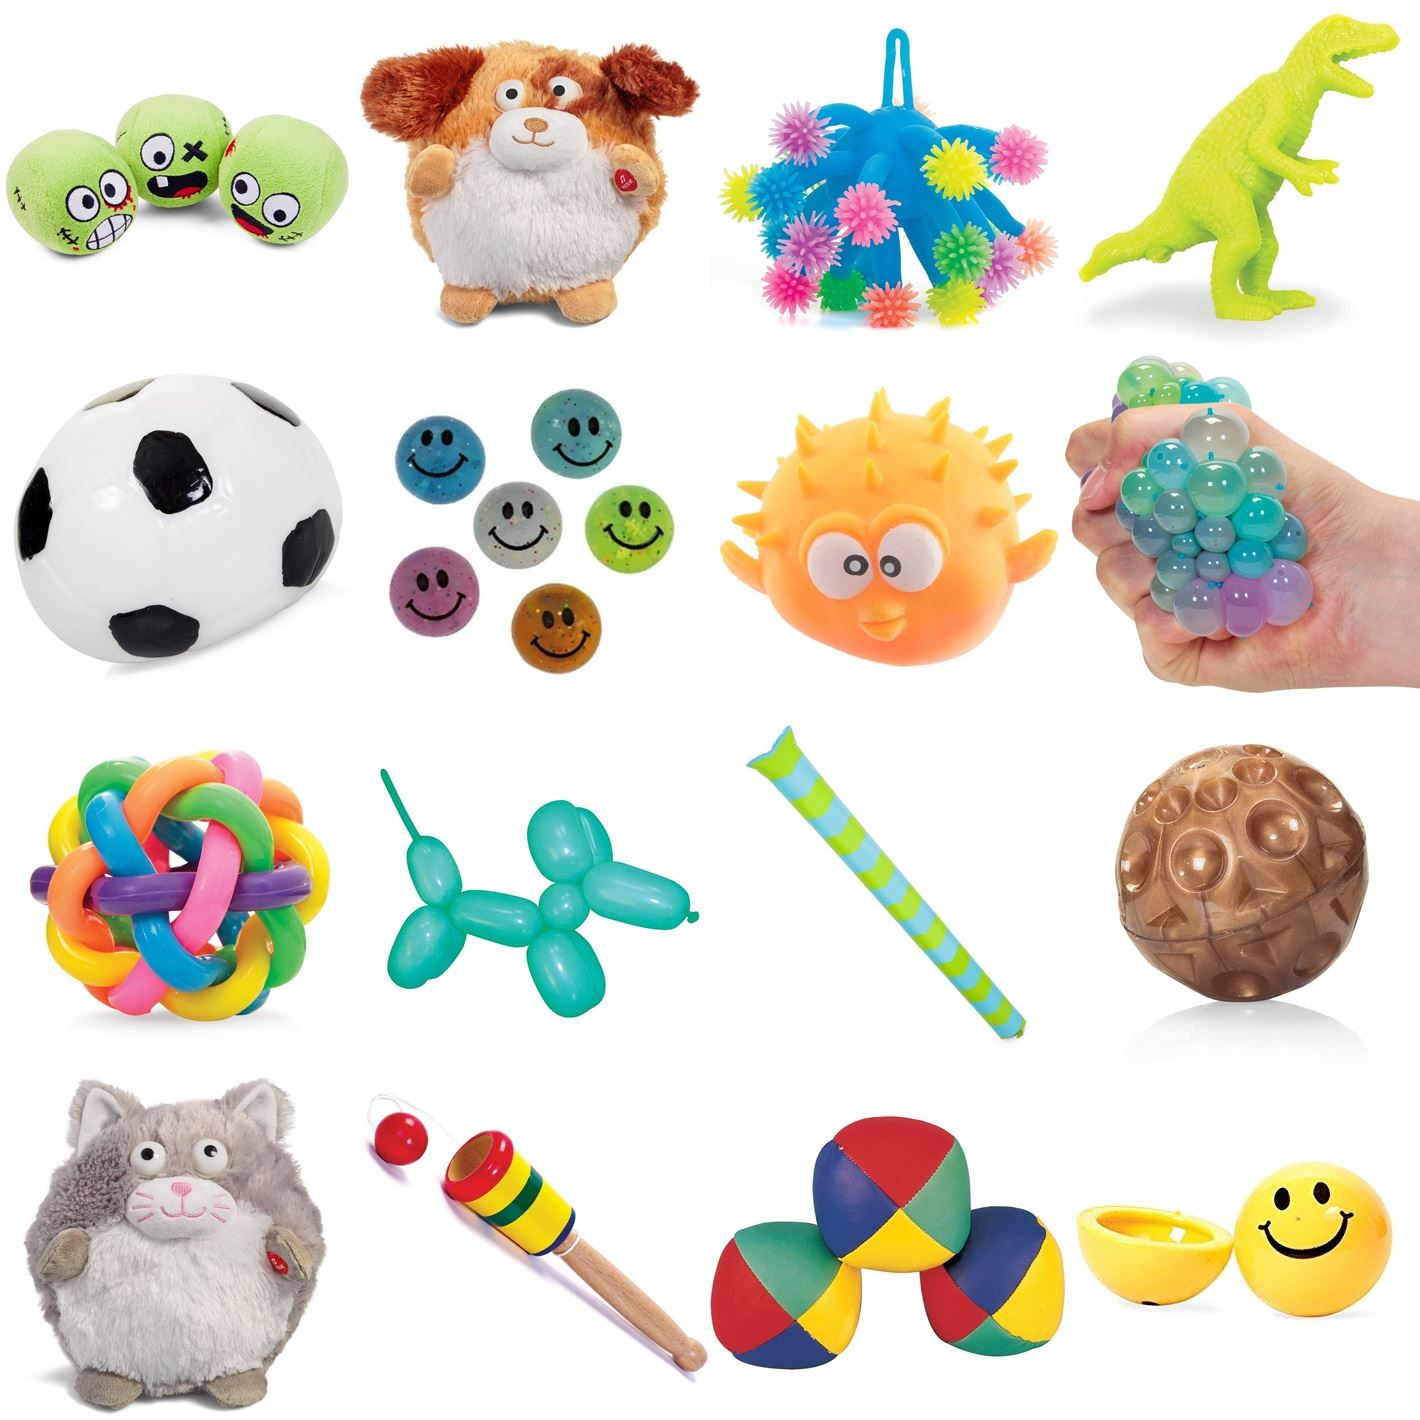 Fidget Toys For Adhd : Choice of fun sensory toys stretch fiddle fidget autism